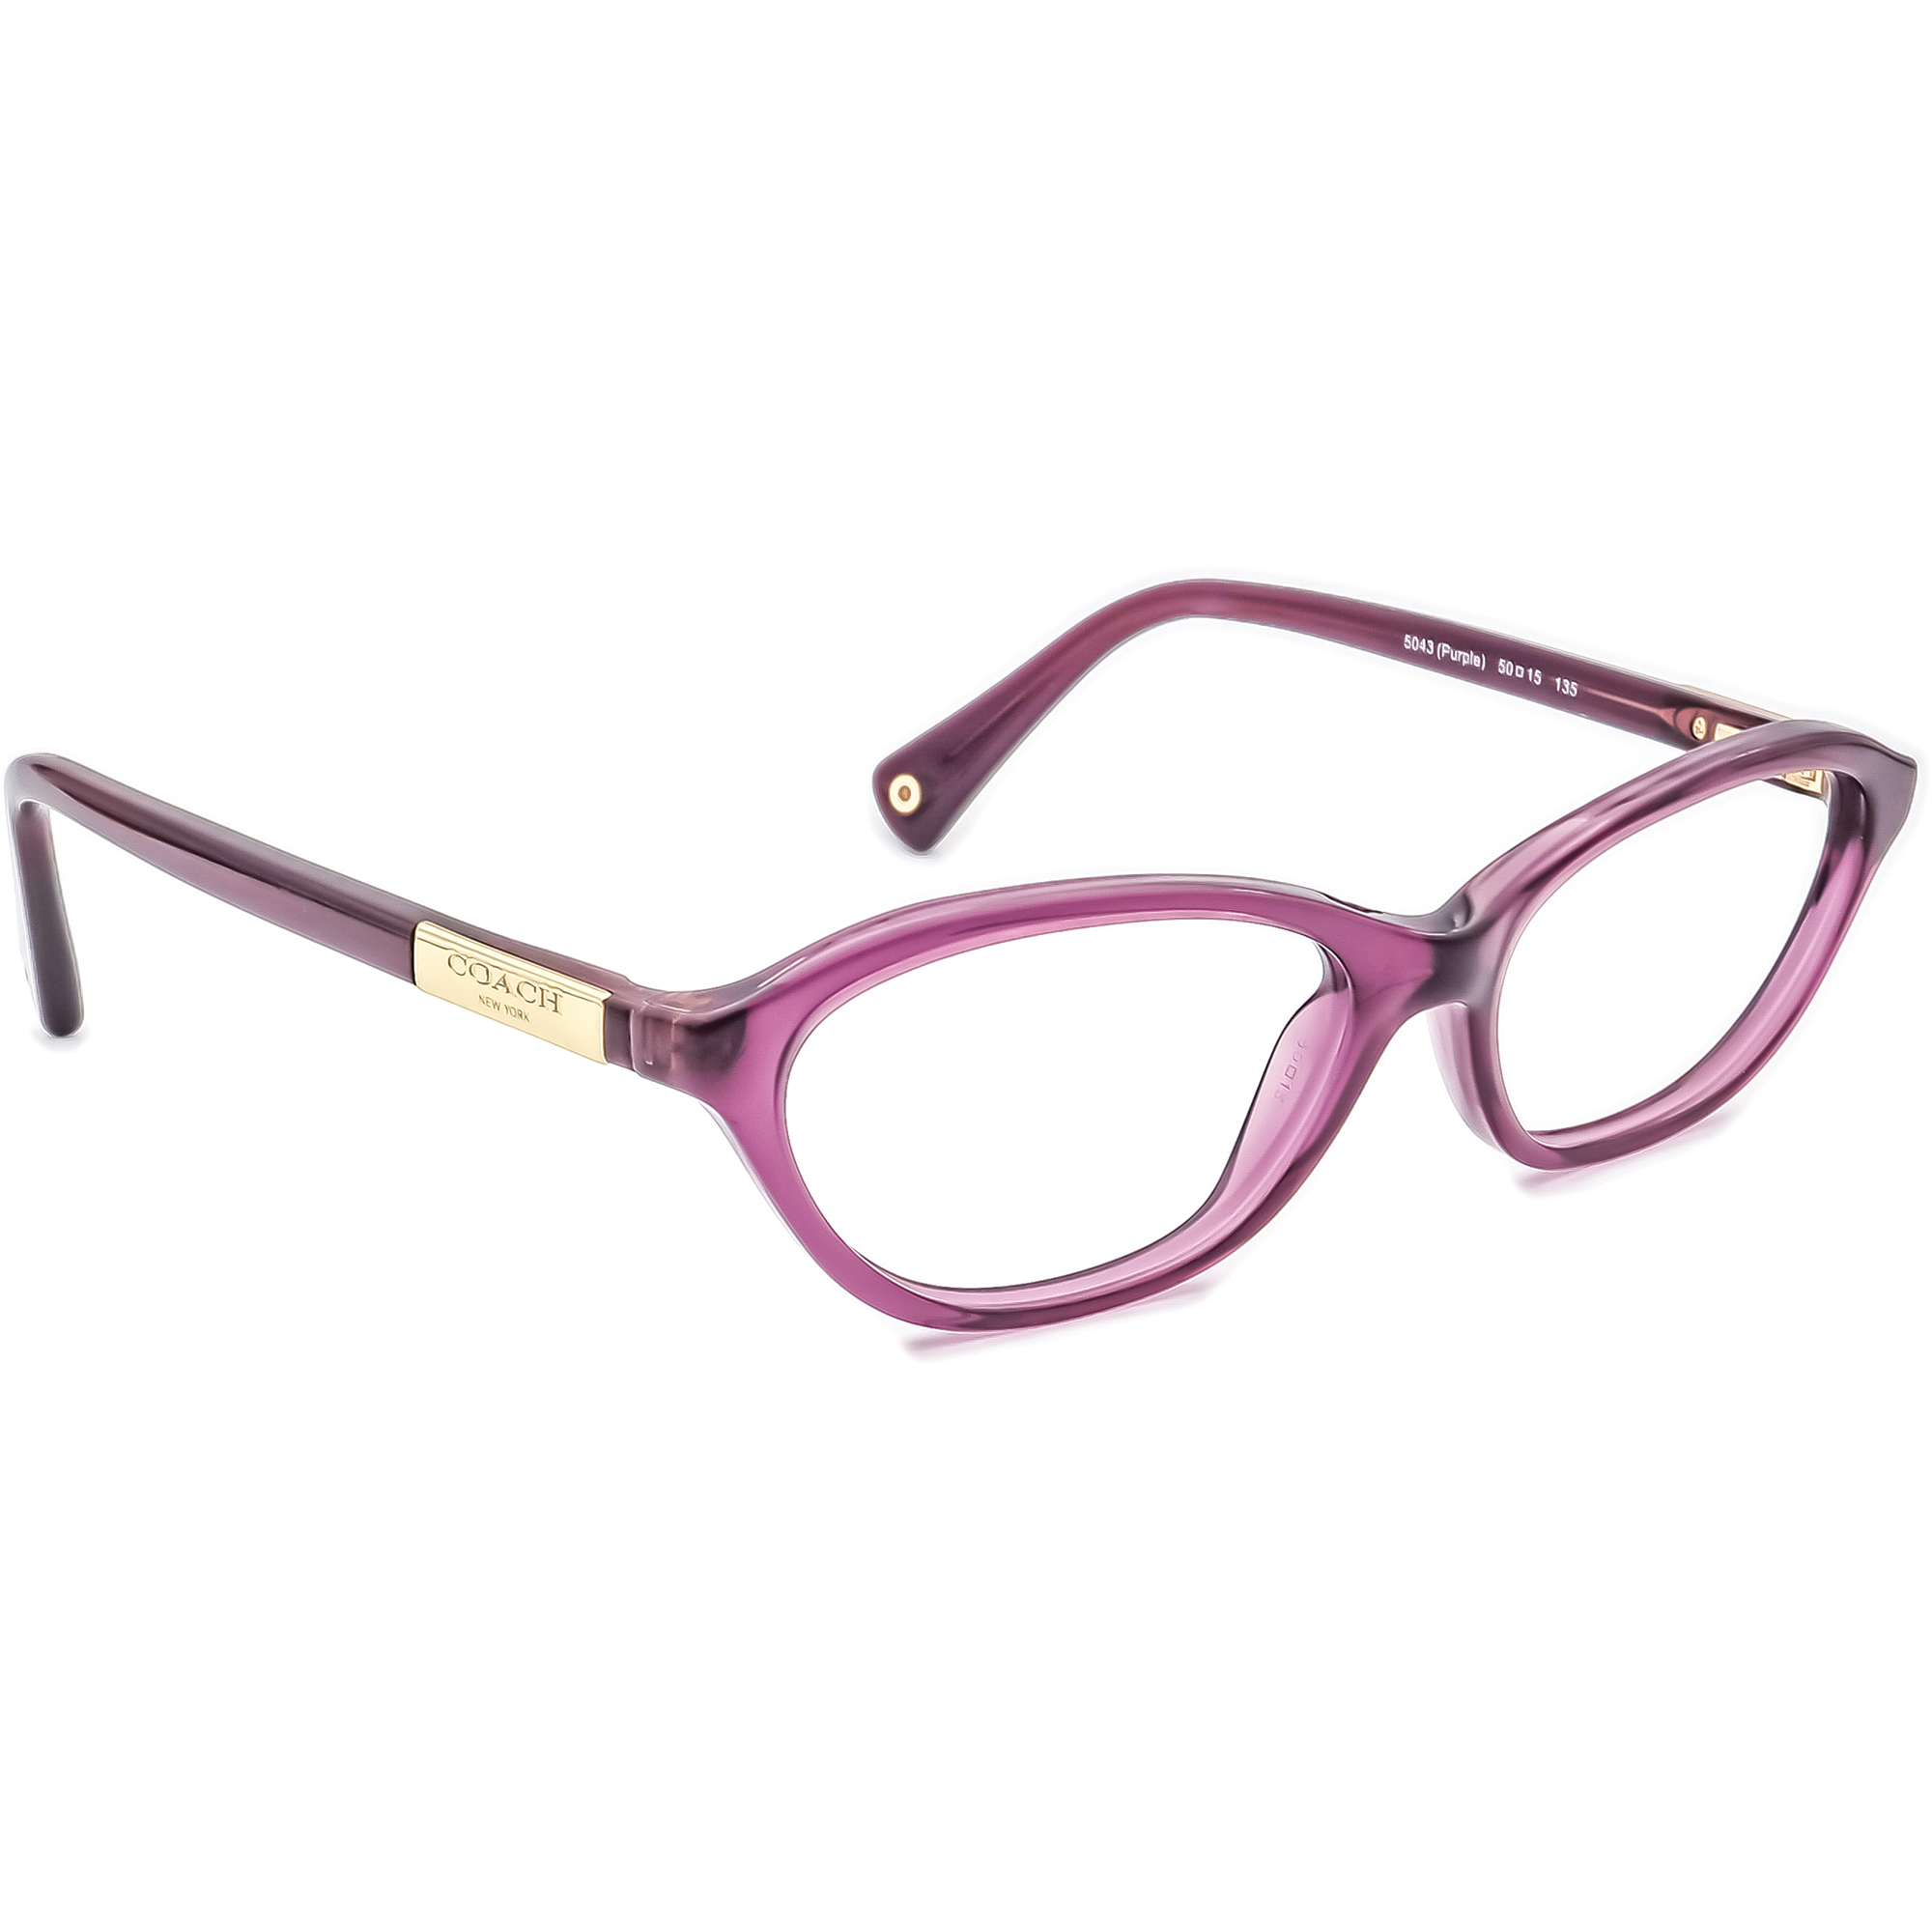 Coach HC 6046 (Maria) 5043 Purple Eyeglasses